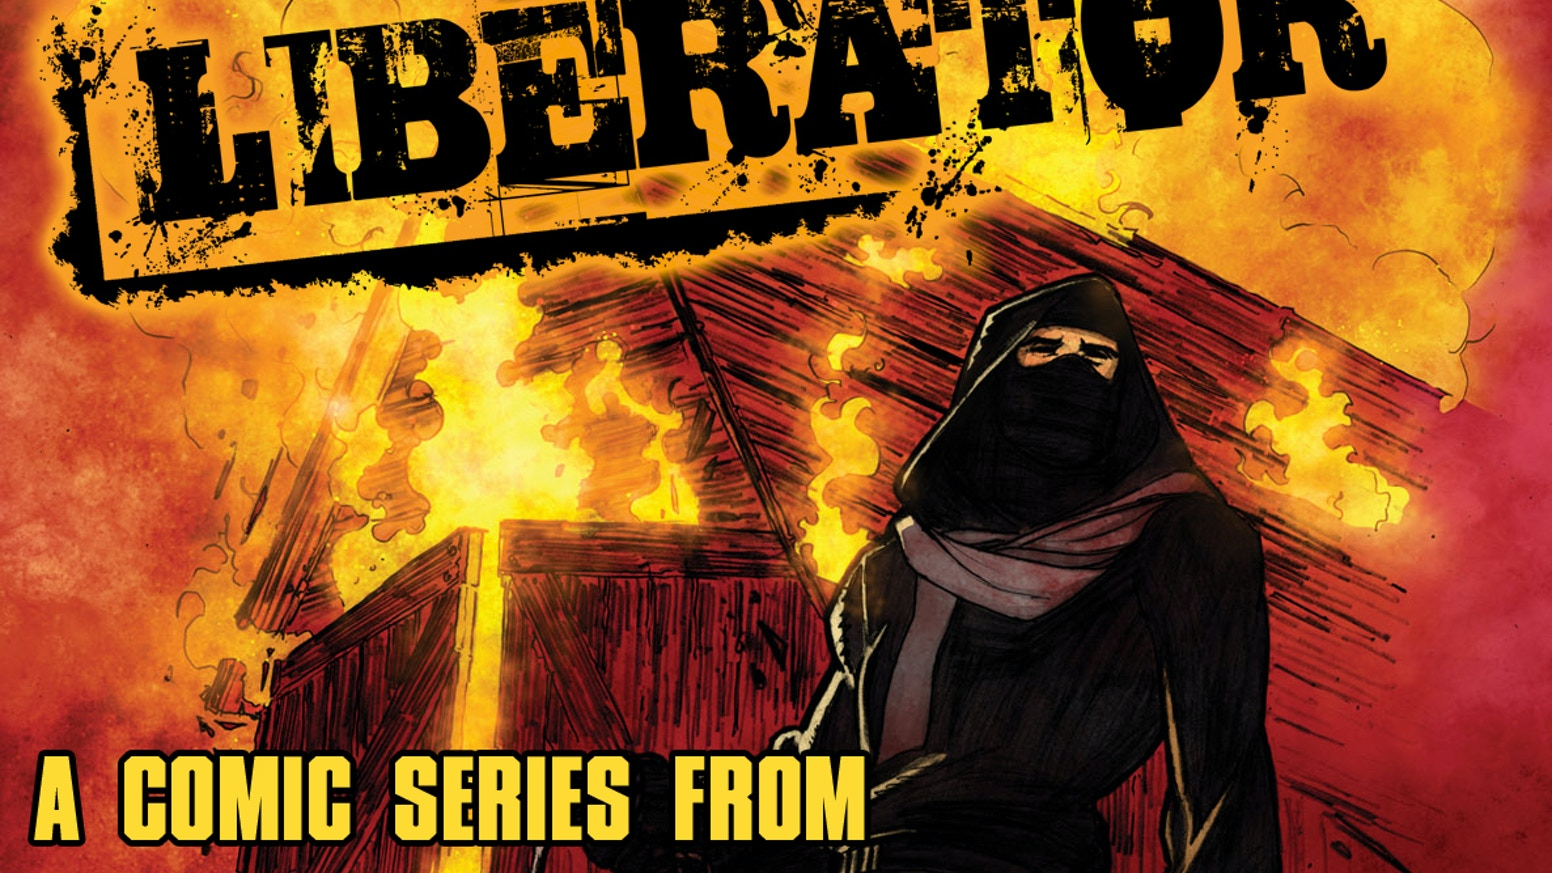 Liberator is a unique and beautifully illustrated comic book series starring brave heroes risking it all to protect animals.